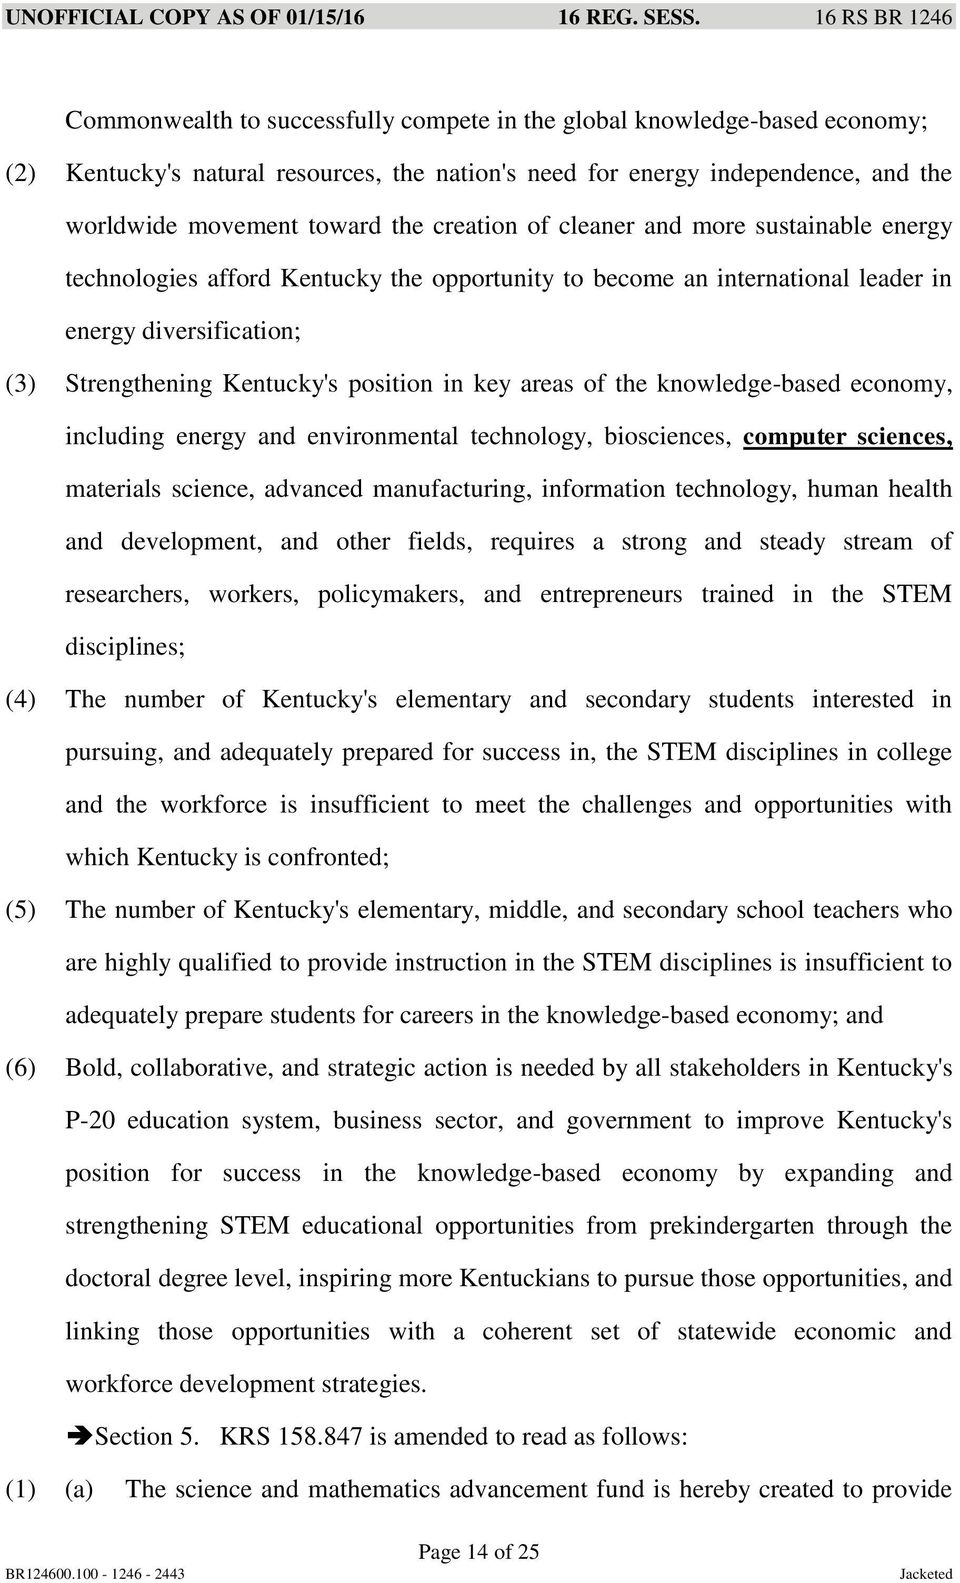 the knowledge-based economy, including energy and environmental technology, biosciences, computer sciences, materials science, advanced manufacturing, information technology, human health and